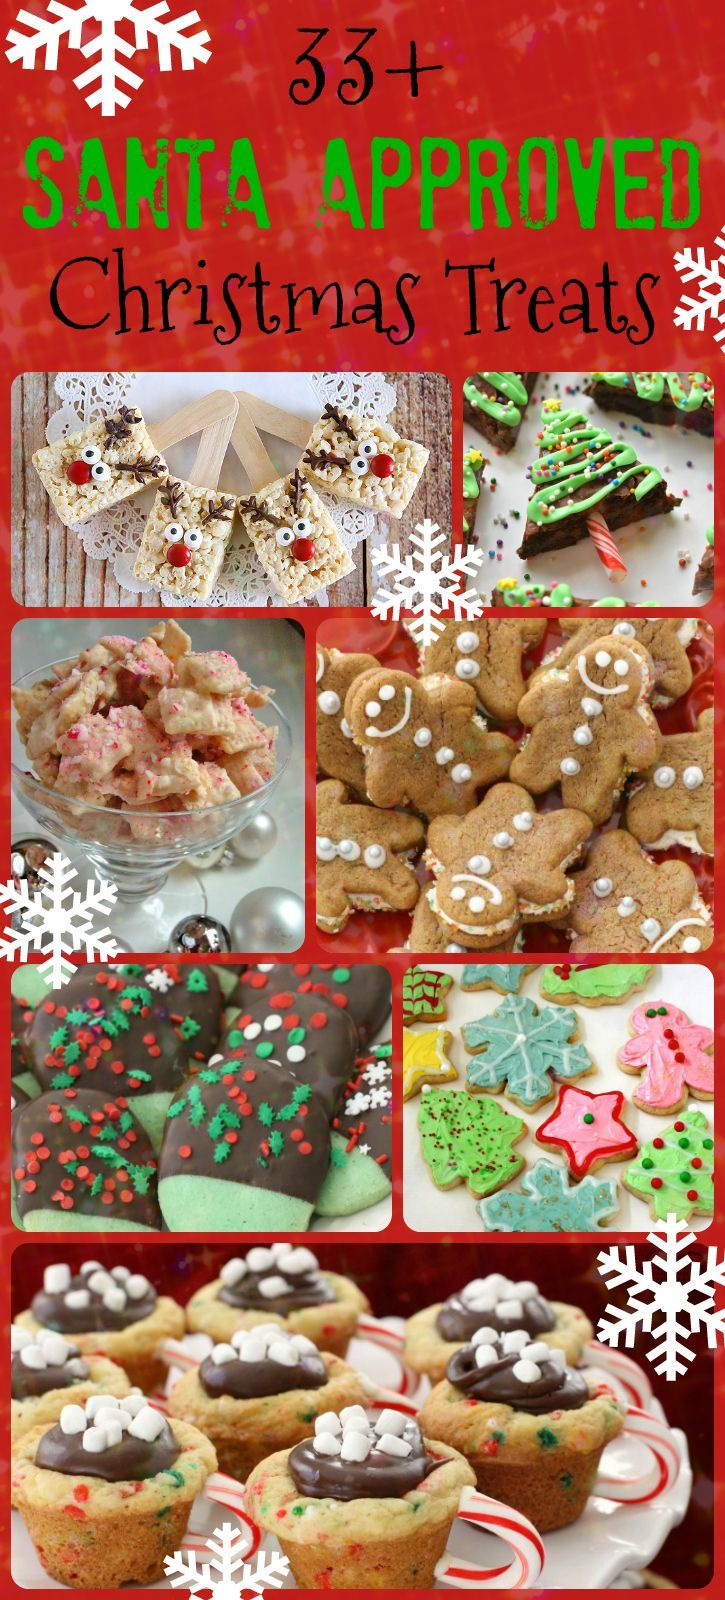 33+ Santa Approved Christmas Treats - a fun roundup of simple, easy holiday recipes that everyone enjoys! Great desserts from- Butter With A Side of Bread